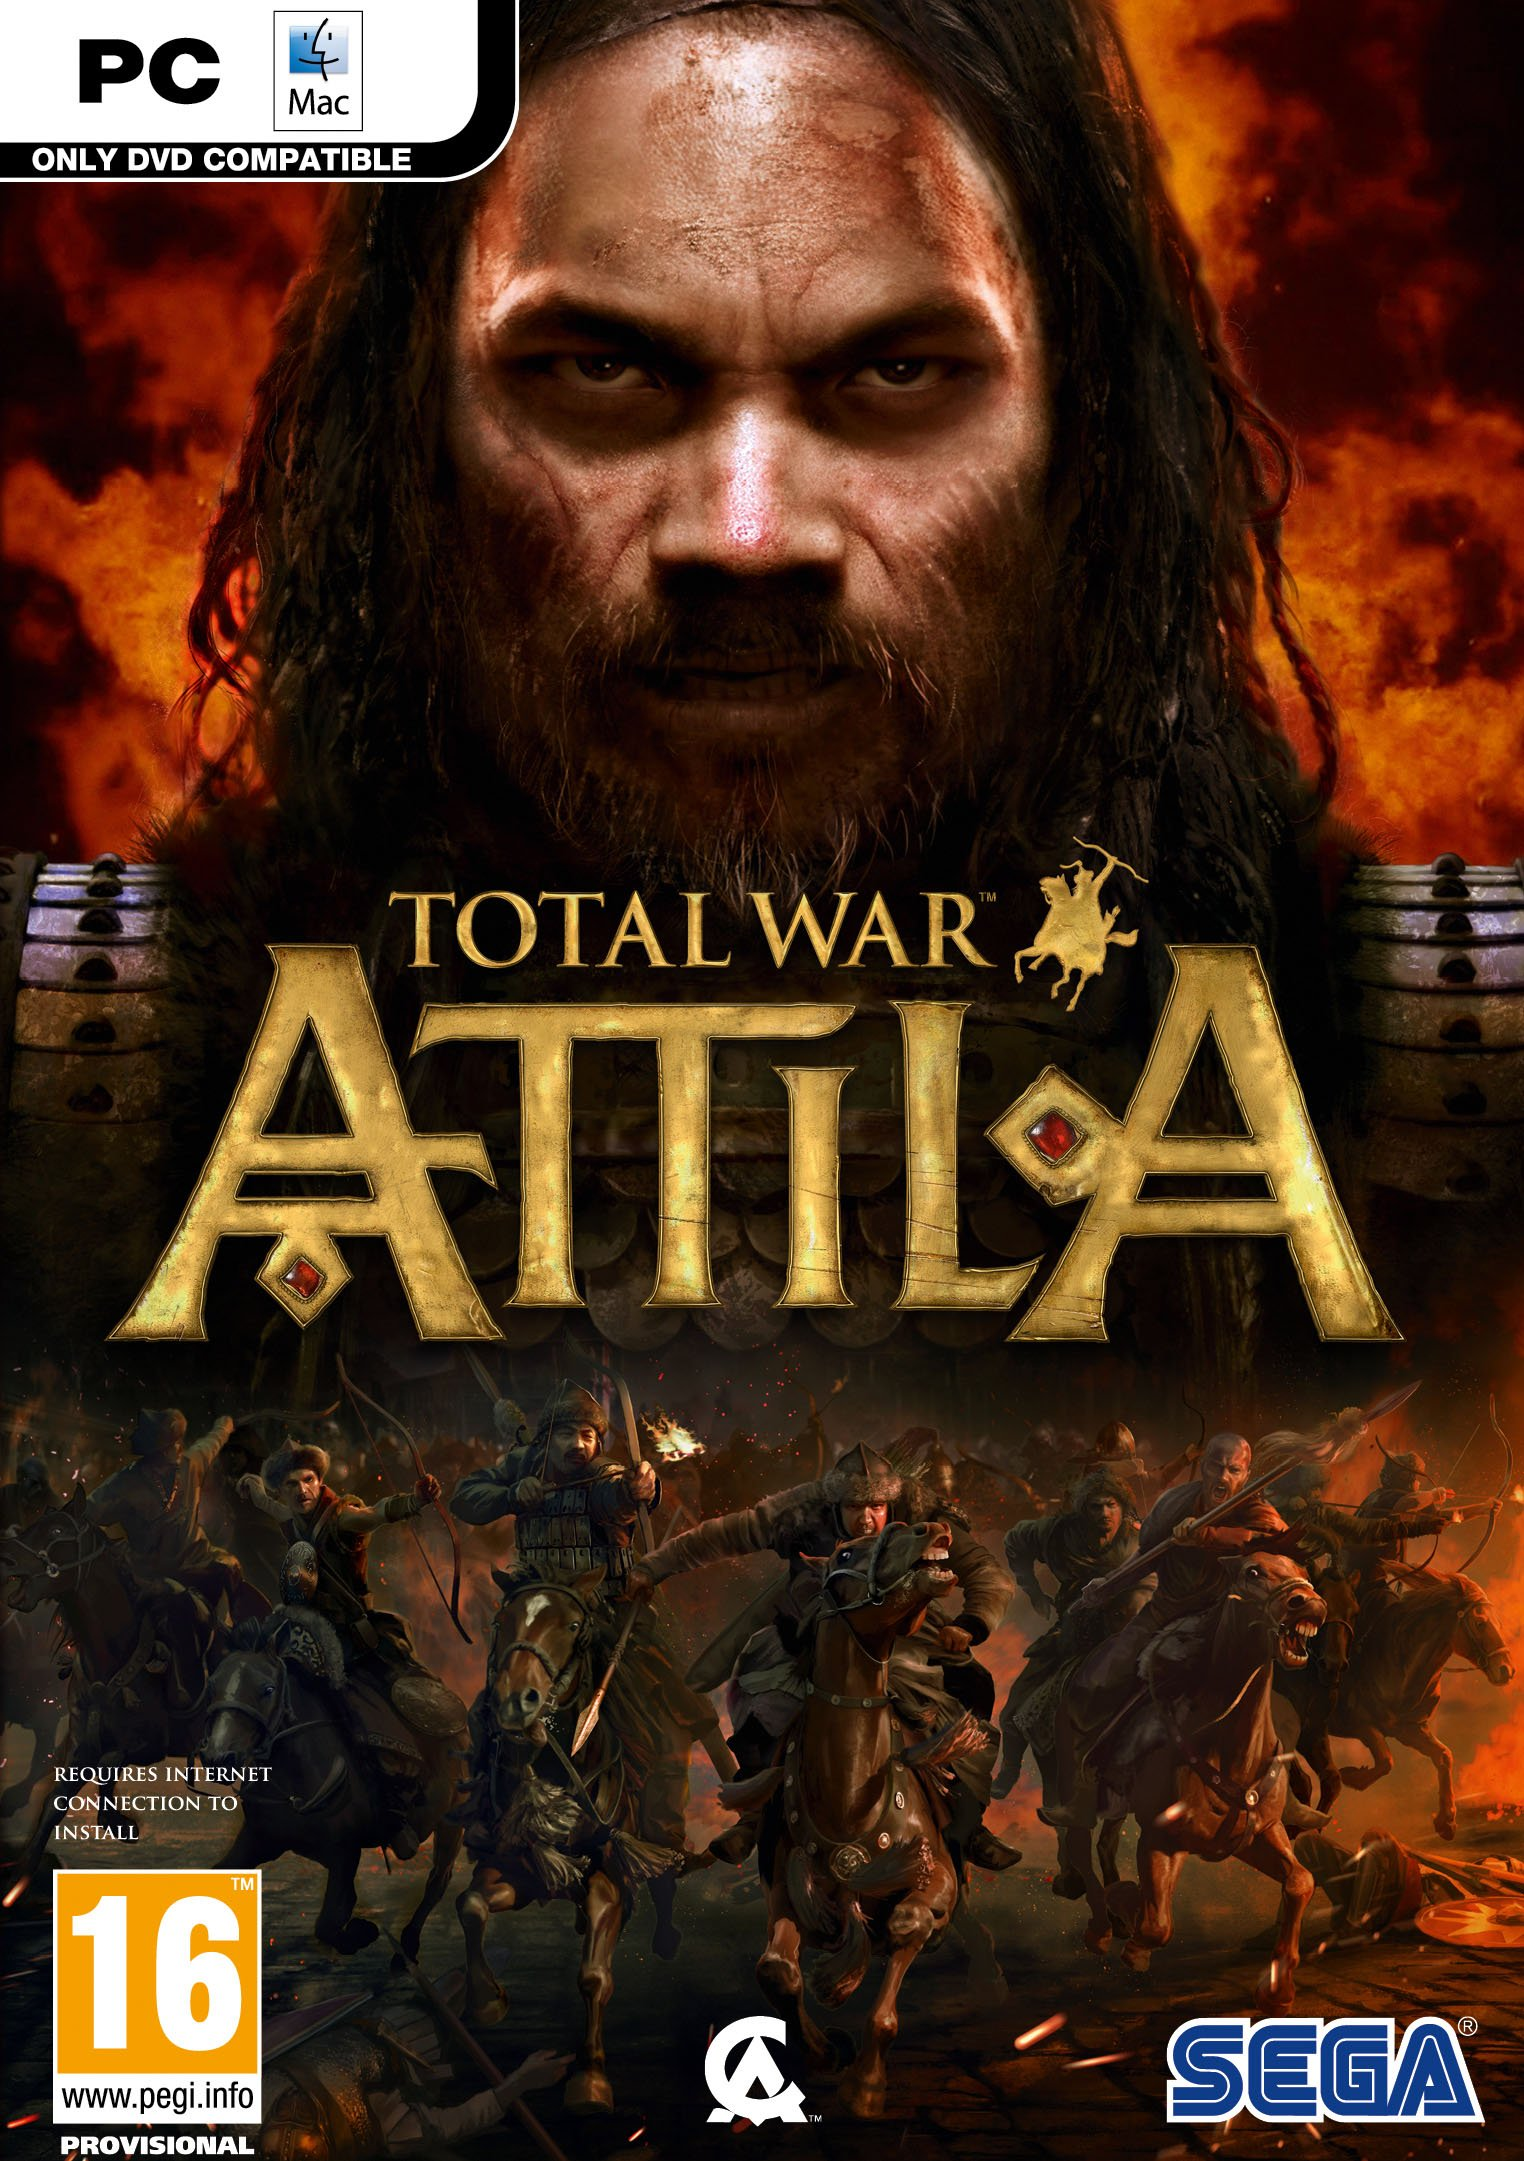 Box art - Total War: ATTILA